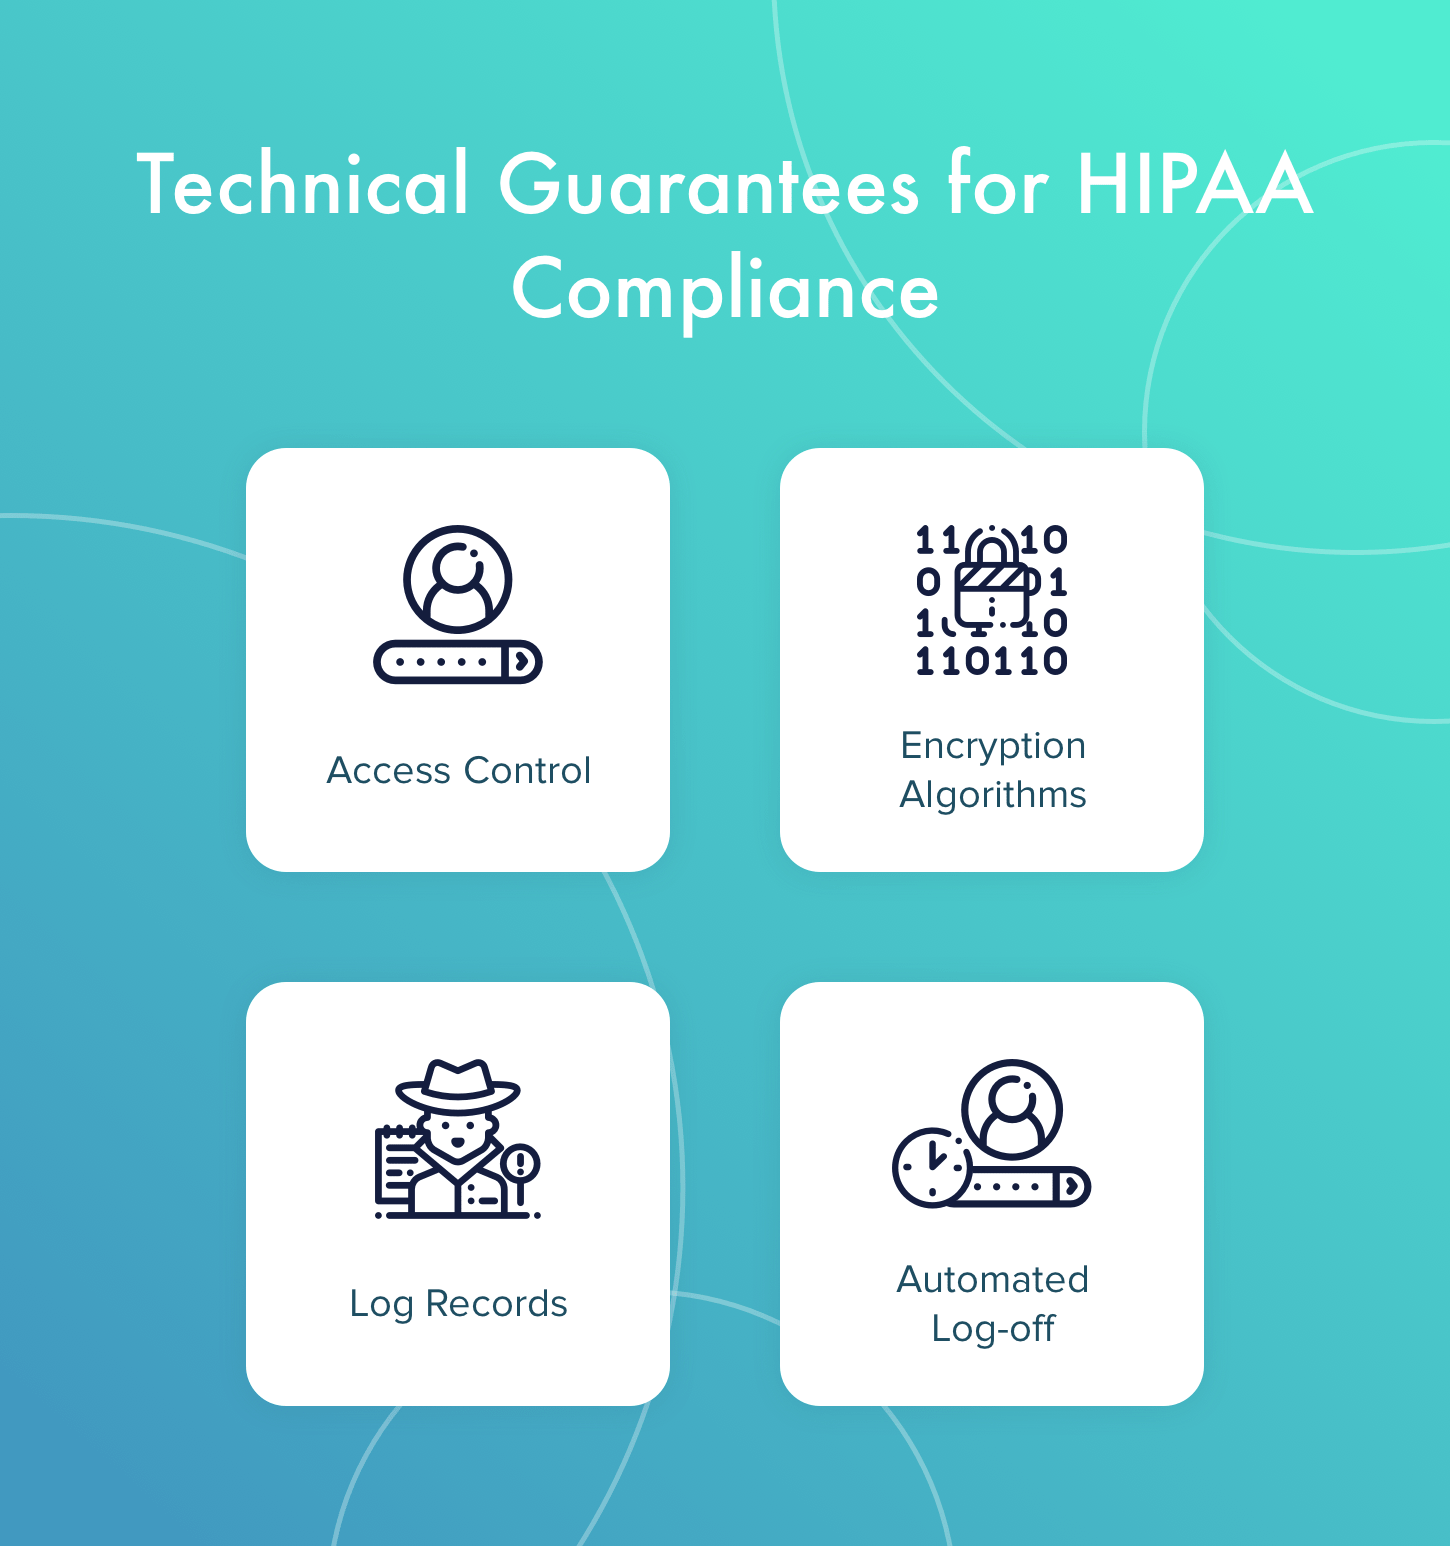 Technical Guarantees for HIPAA Compliance